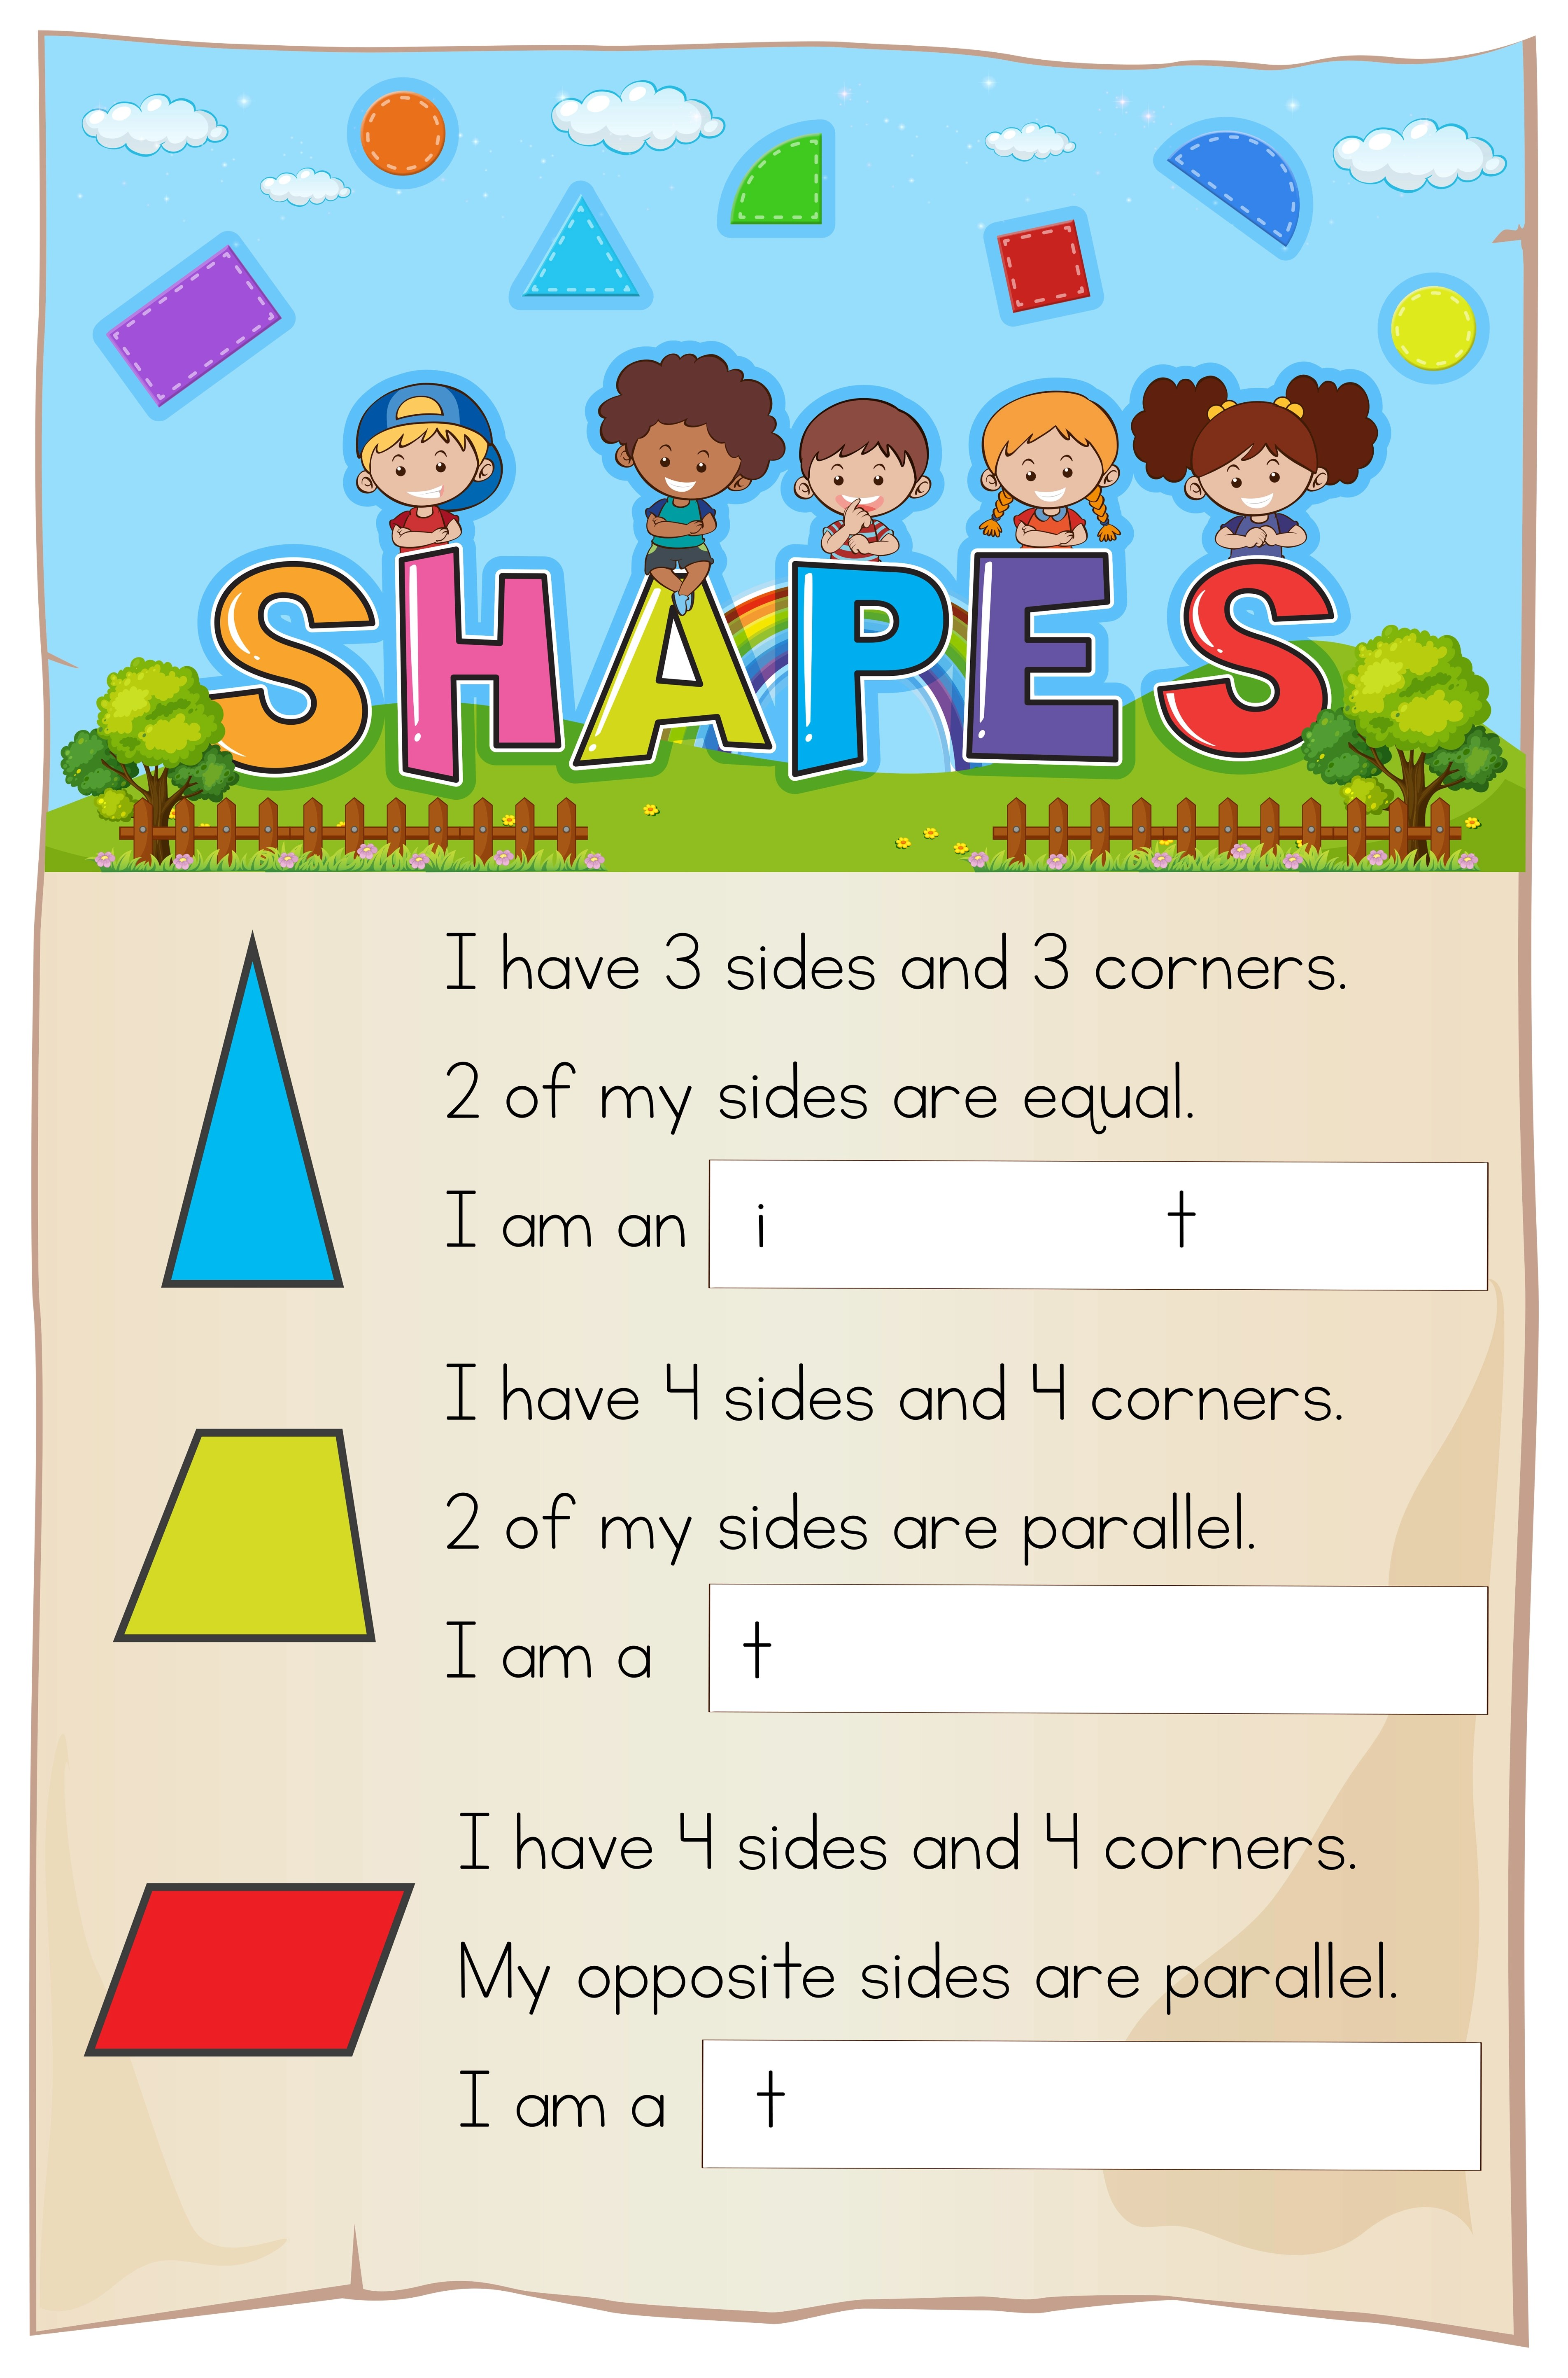 Math Worksheet Template For Shapes